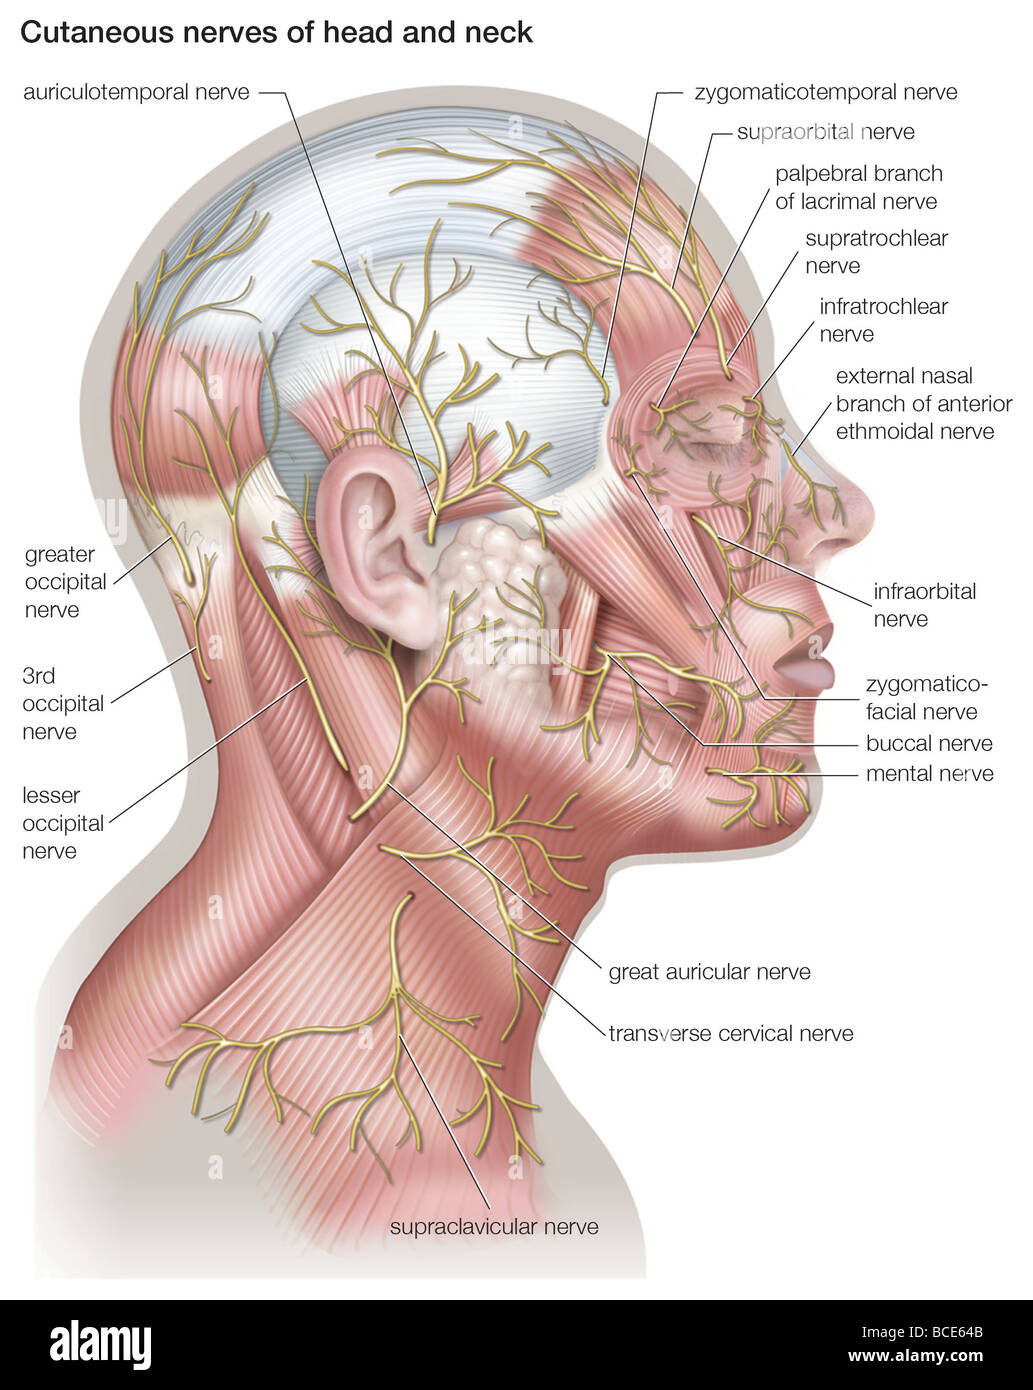 diagram of the cutaneous nerves of the head and neck stock photo    diagram of the cutaneous nerves of the head and neck